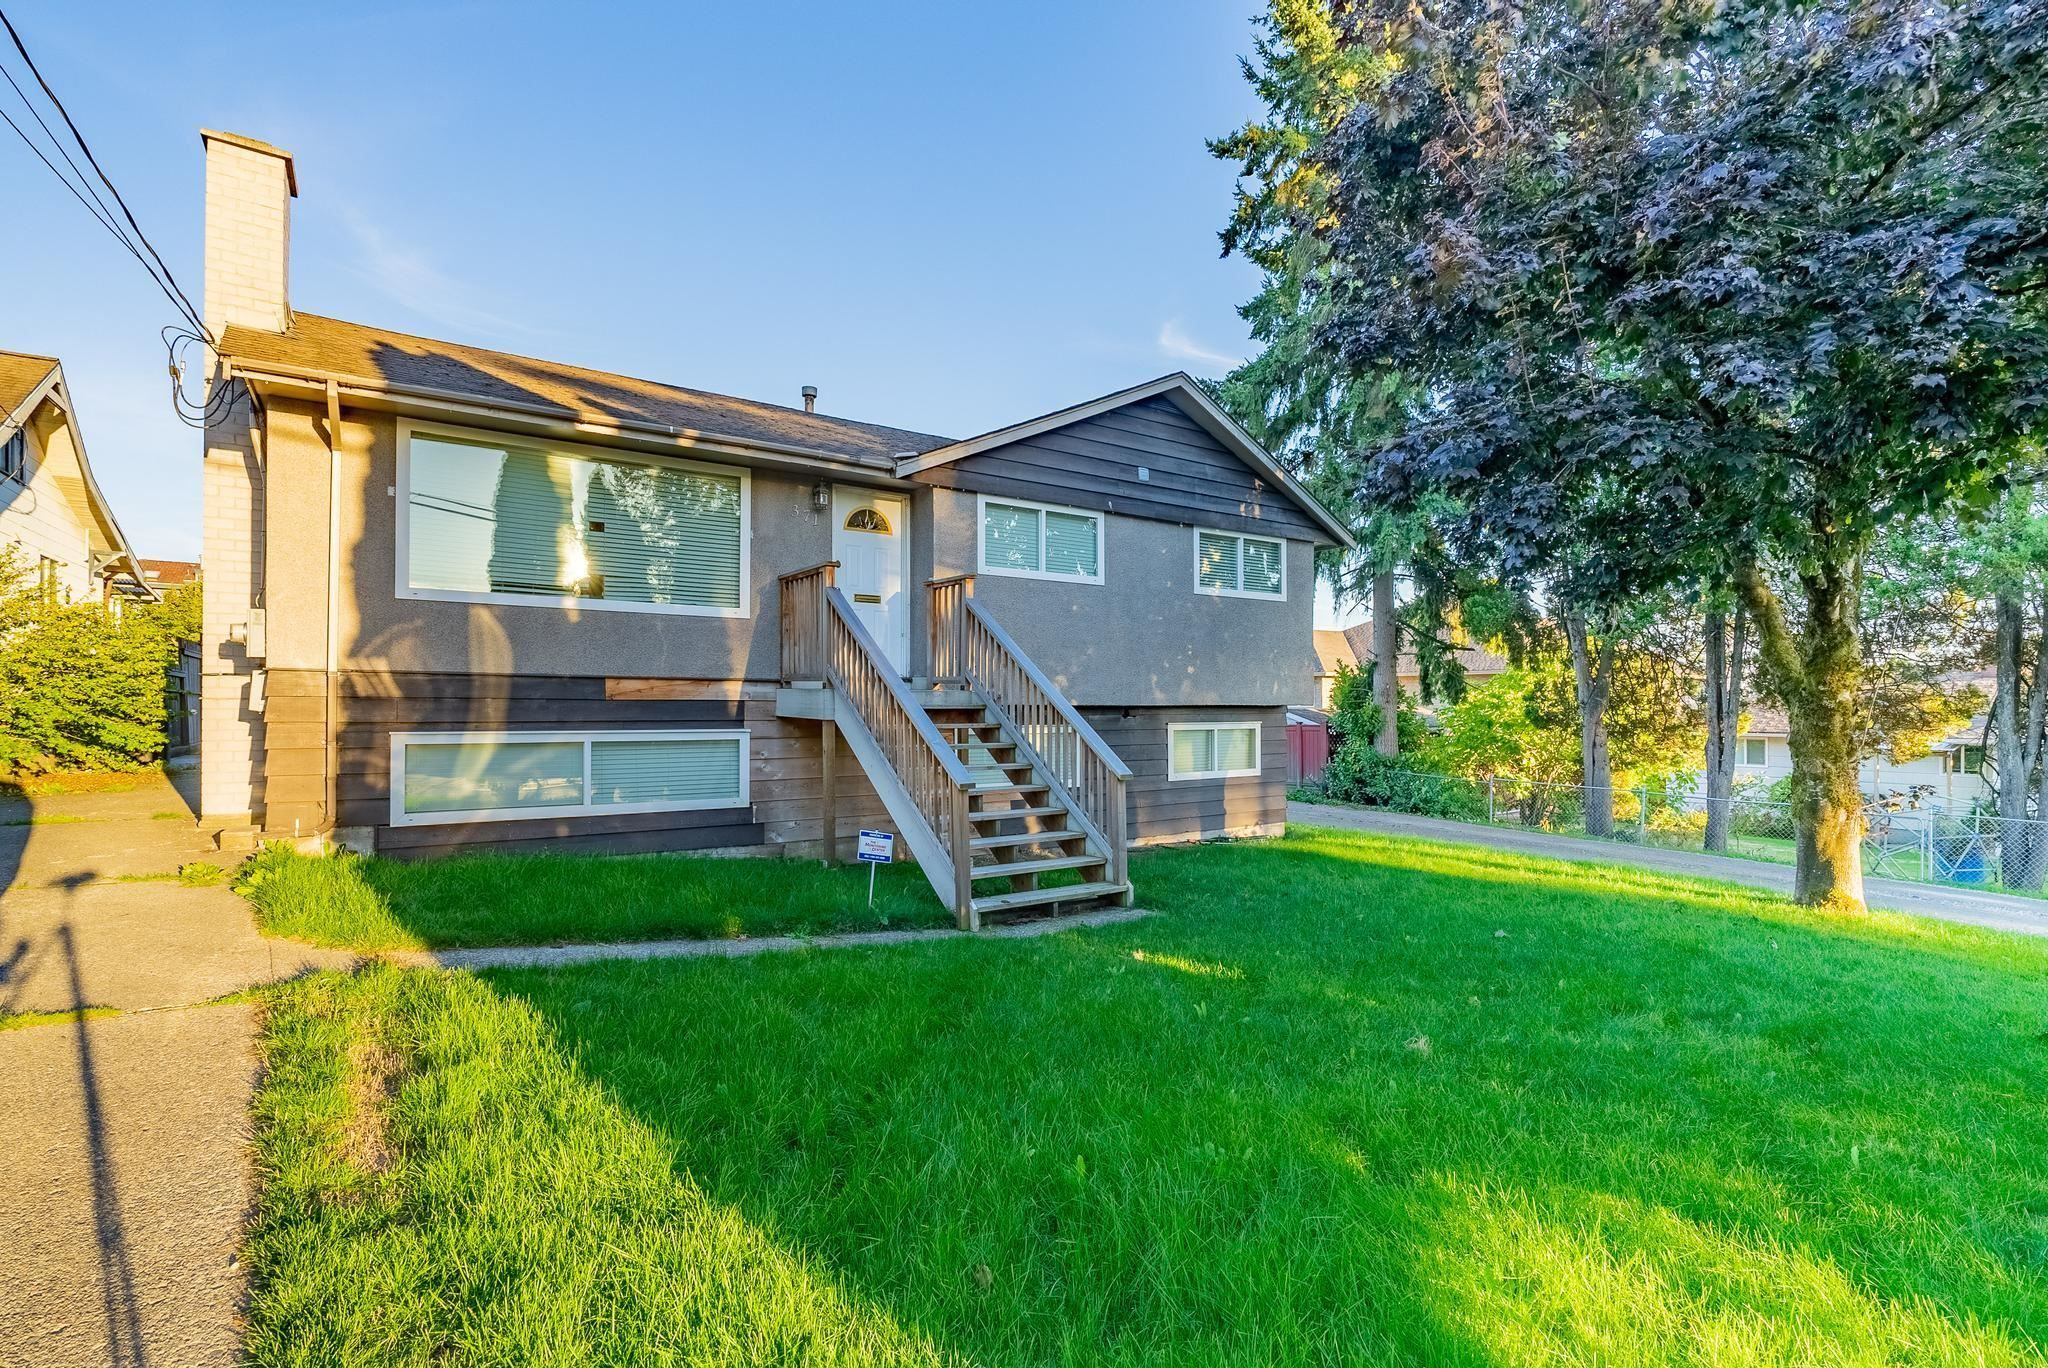 Main Photo: 371 BLUE MOUNTAIN Street in Coquitlam: Maillardville House for sale : MLS®# R2622217